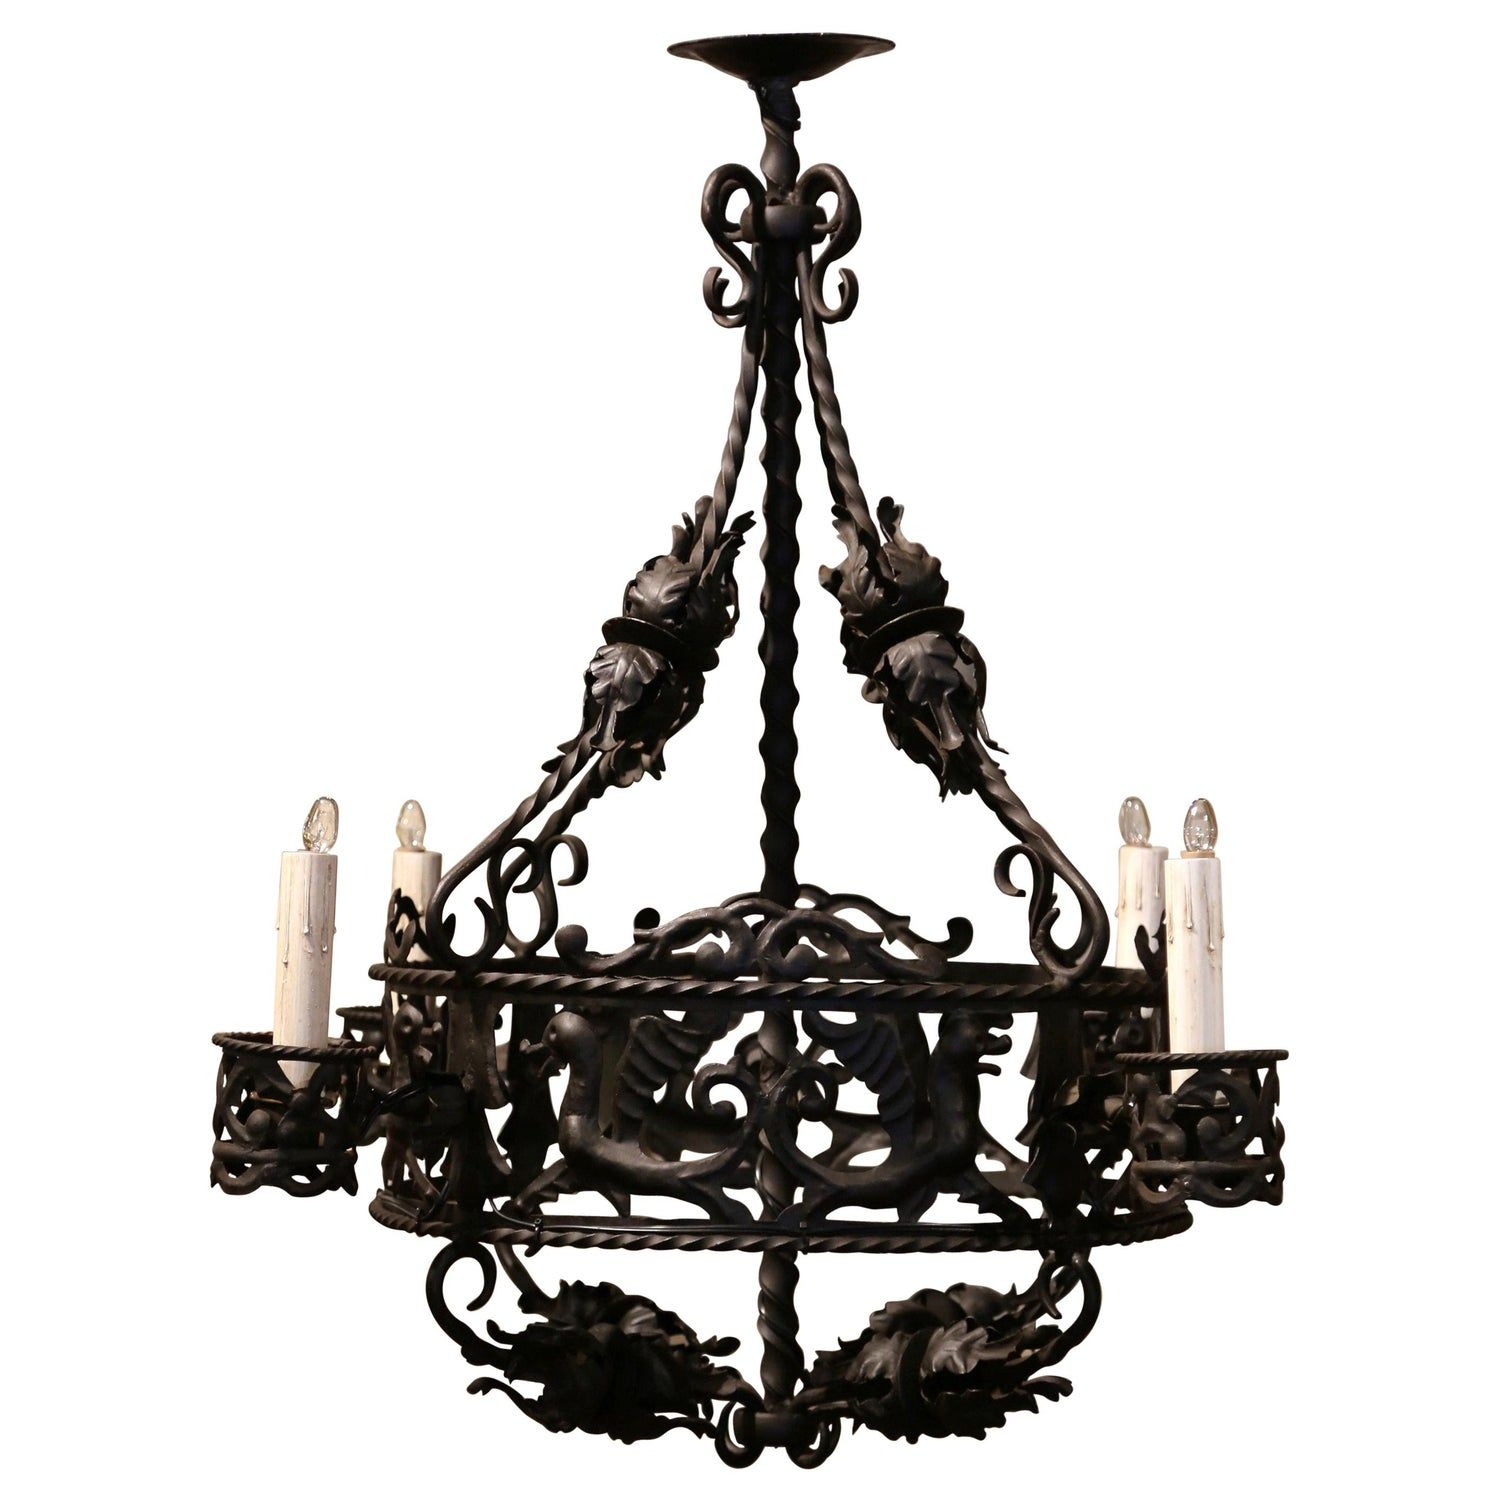 19th Century French Gothic Black Wrought Iron Four Light